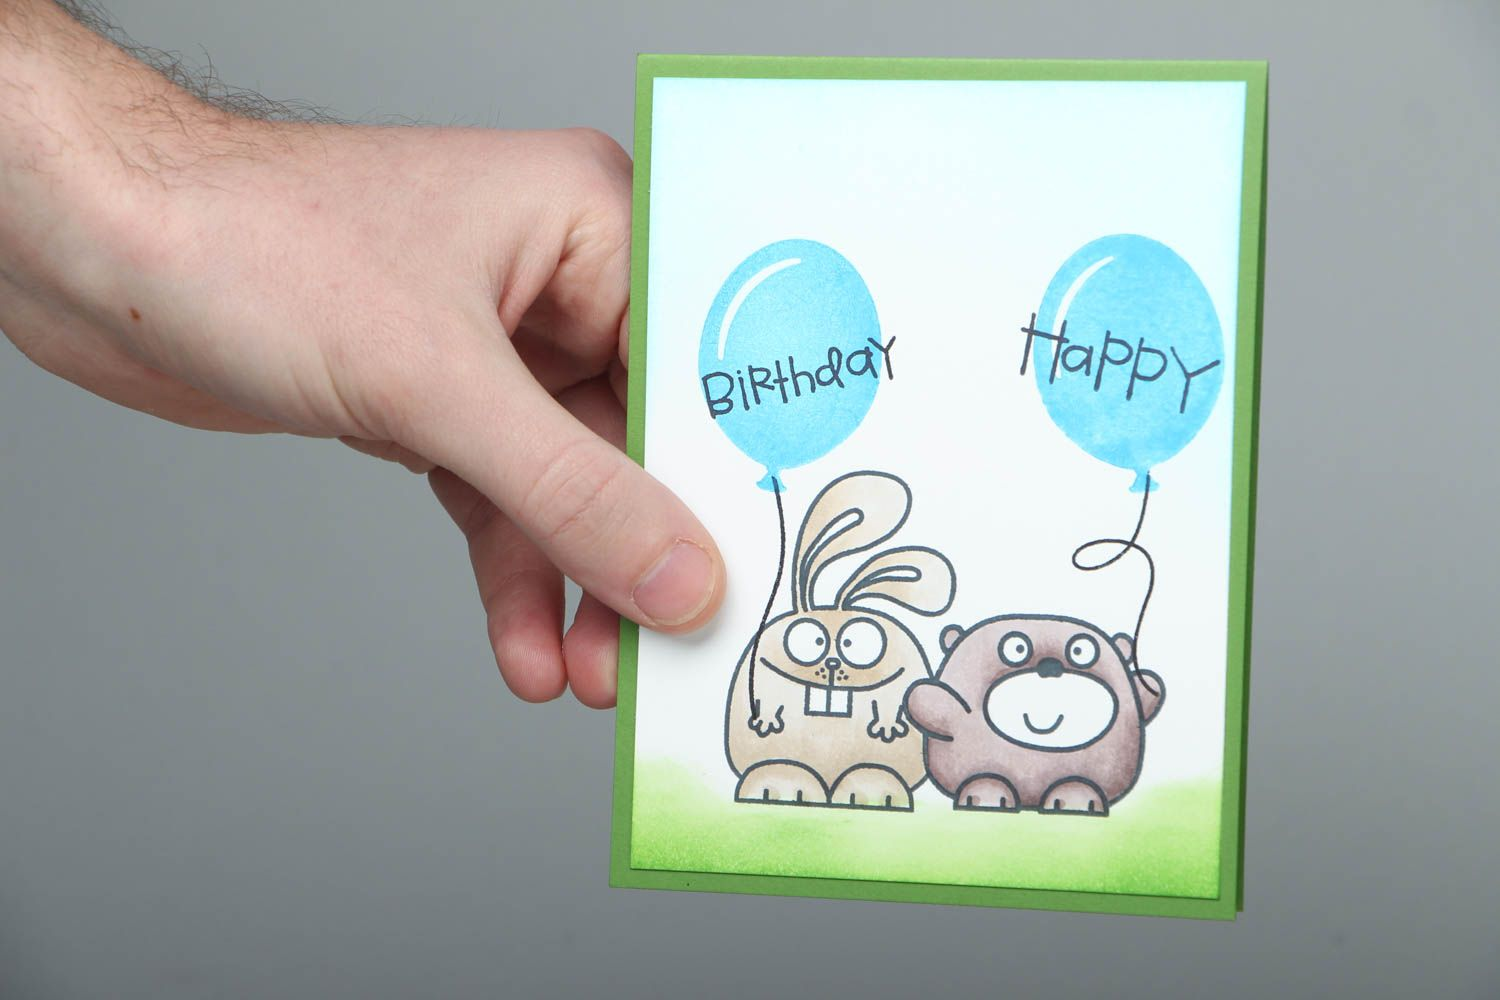 birthday Homemade greeting card Happy Birthday - MADEheart.com